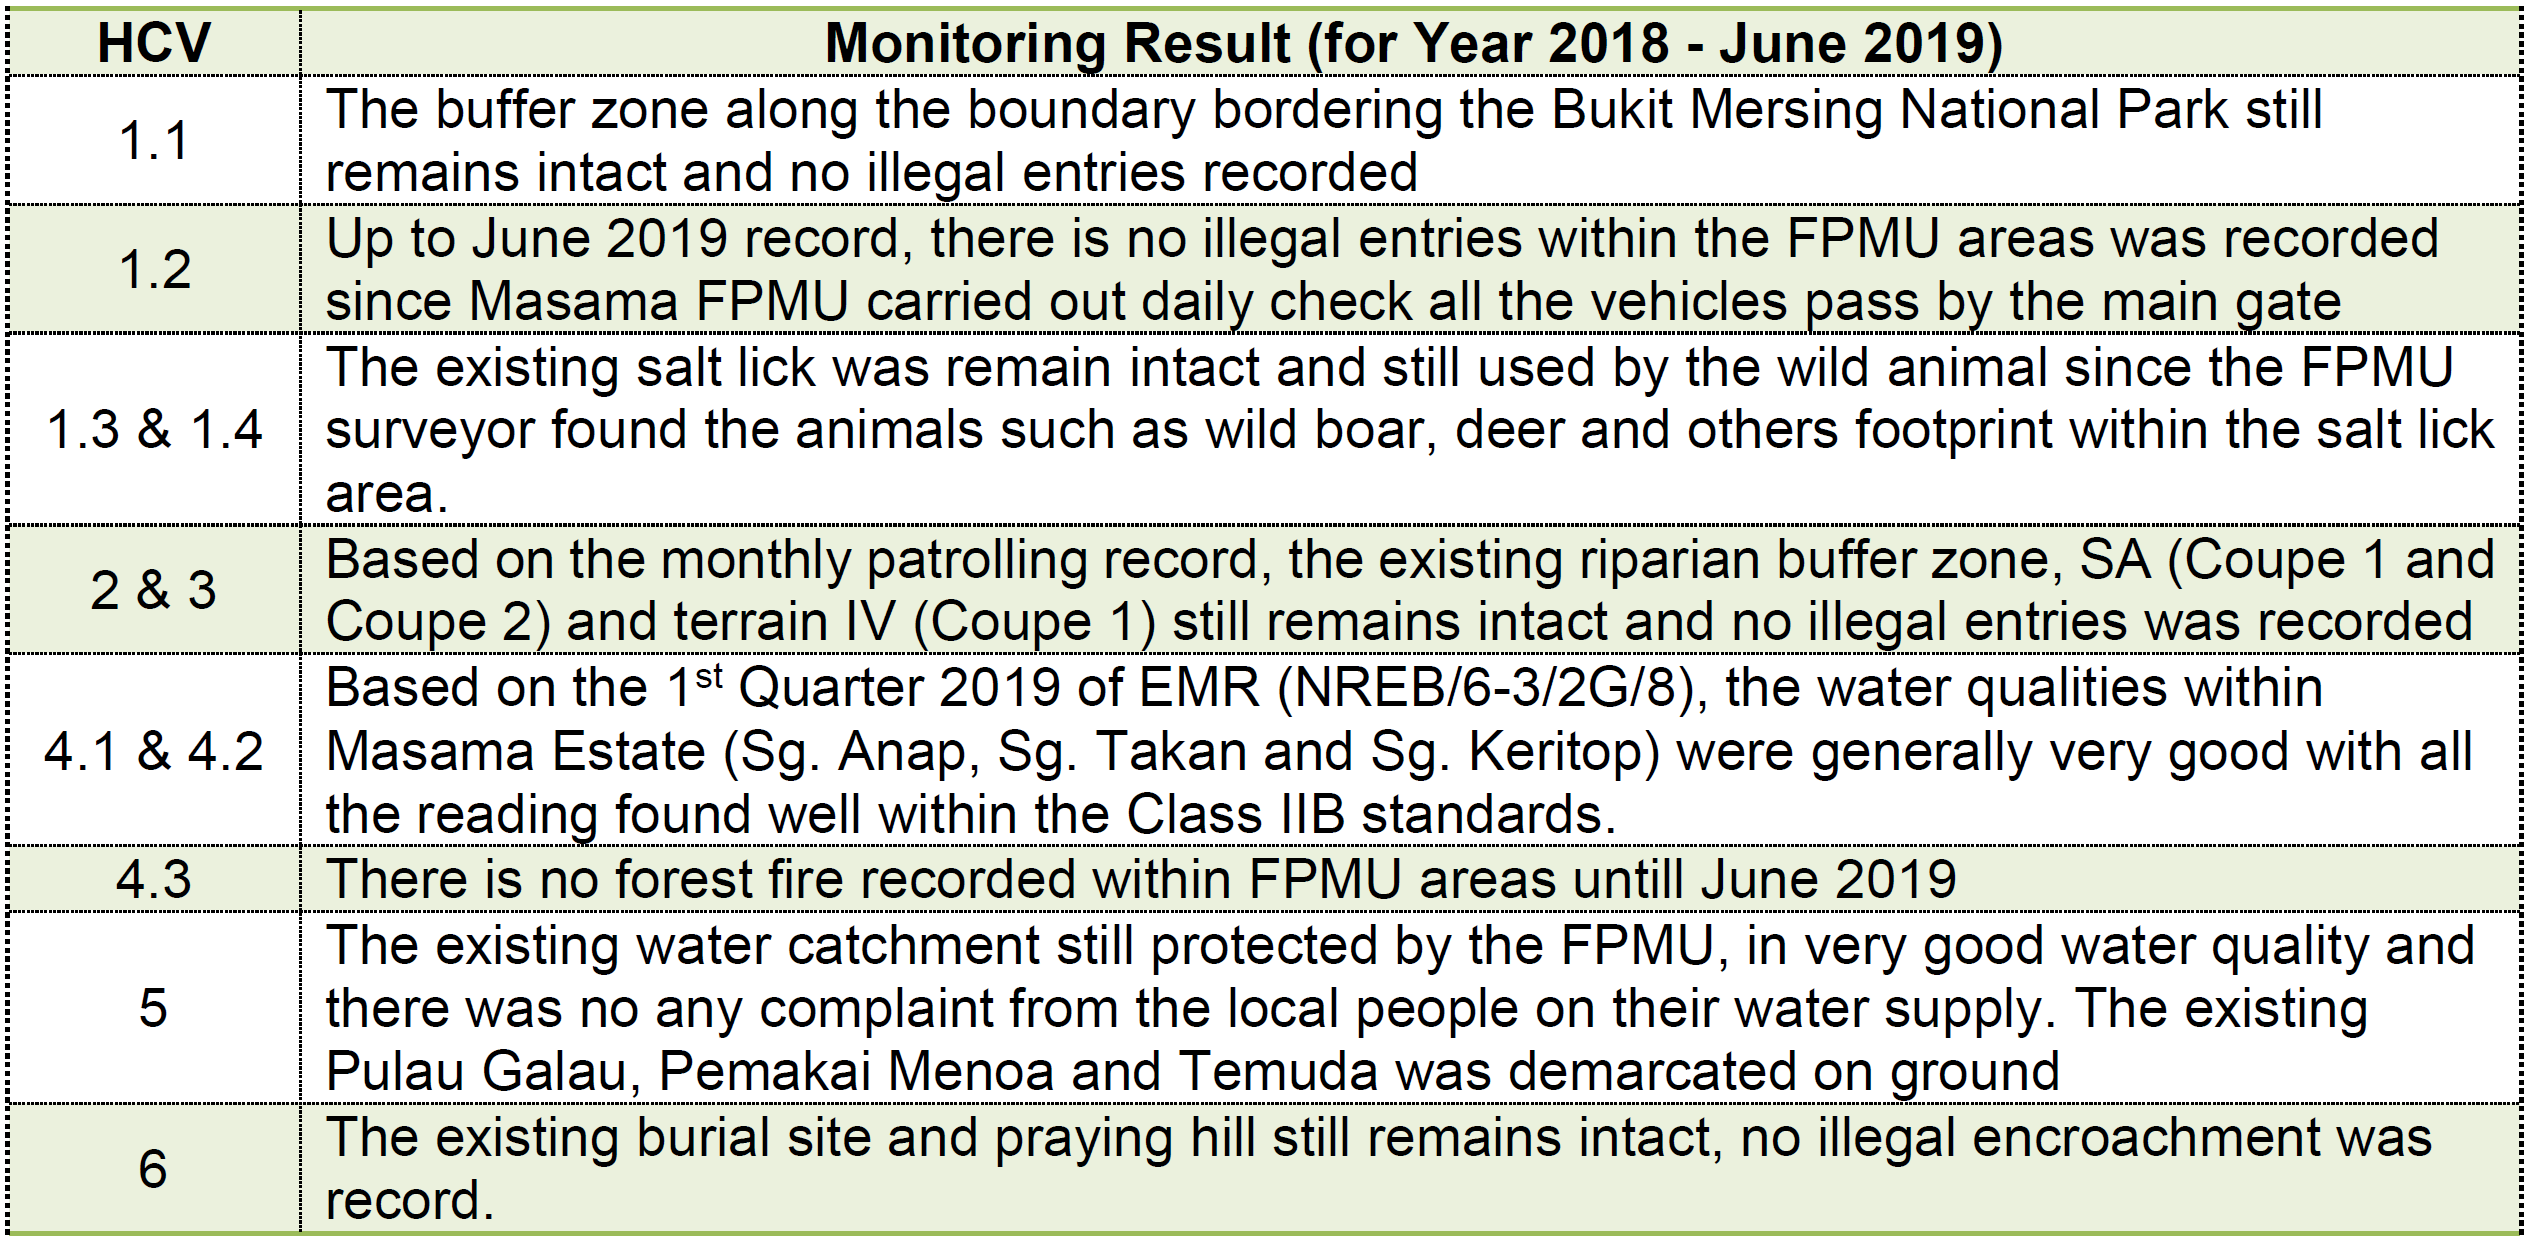 2019 6 High Conservation Value Area monitoring result